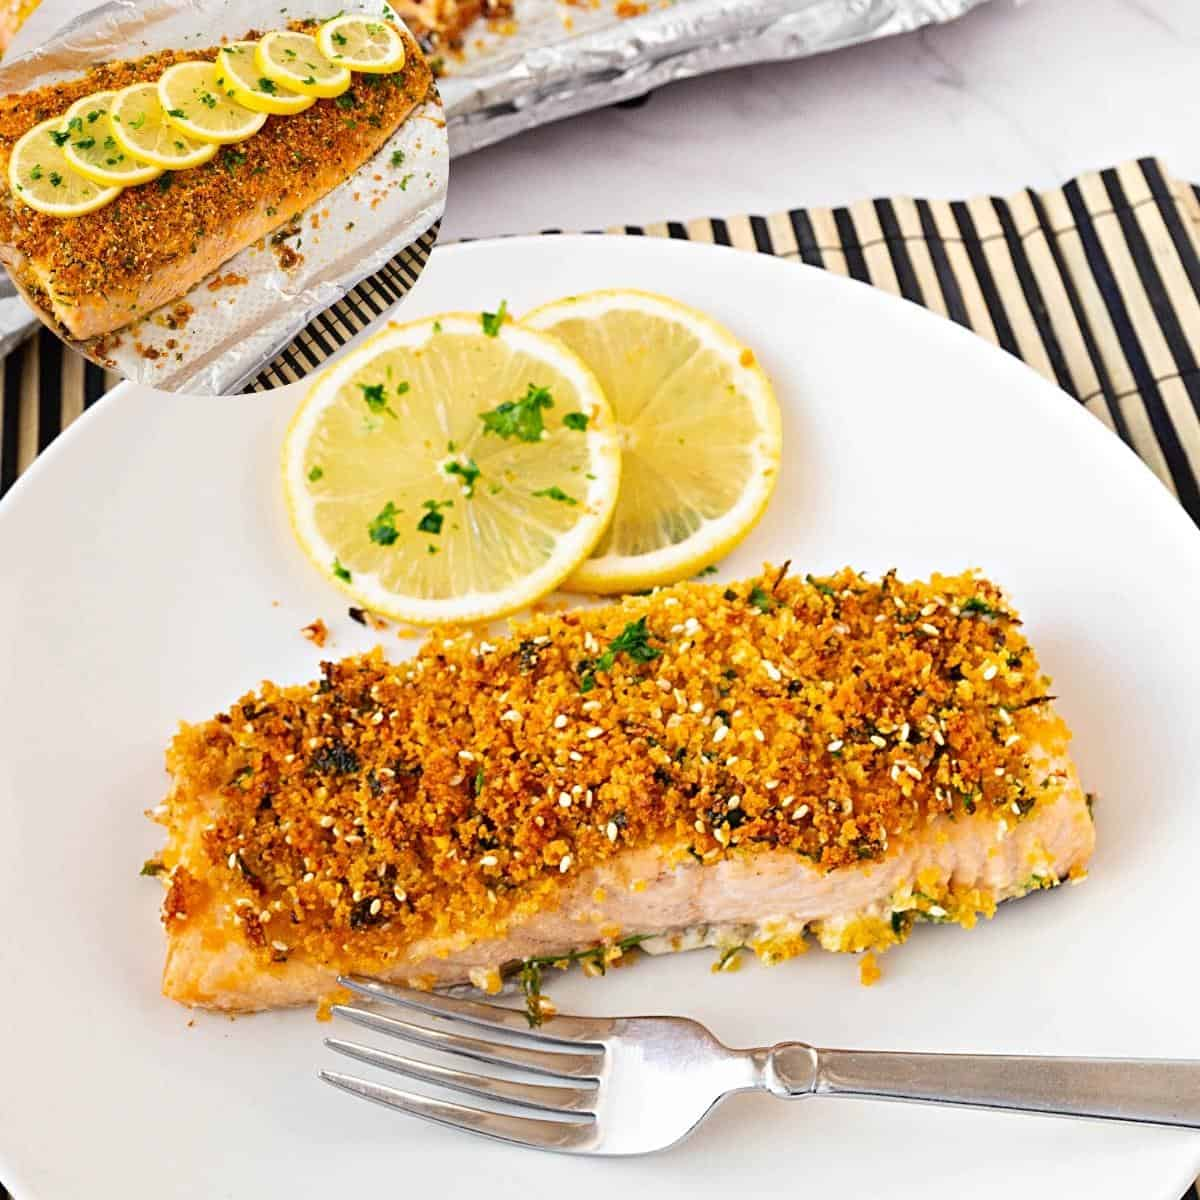 A slice of salmon on a plate topped with breadcrumbs.